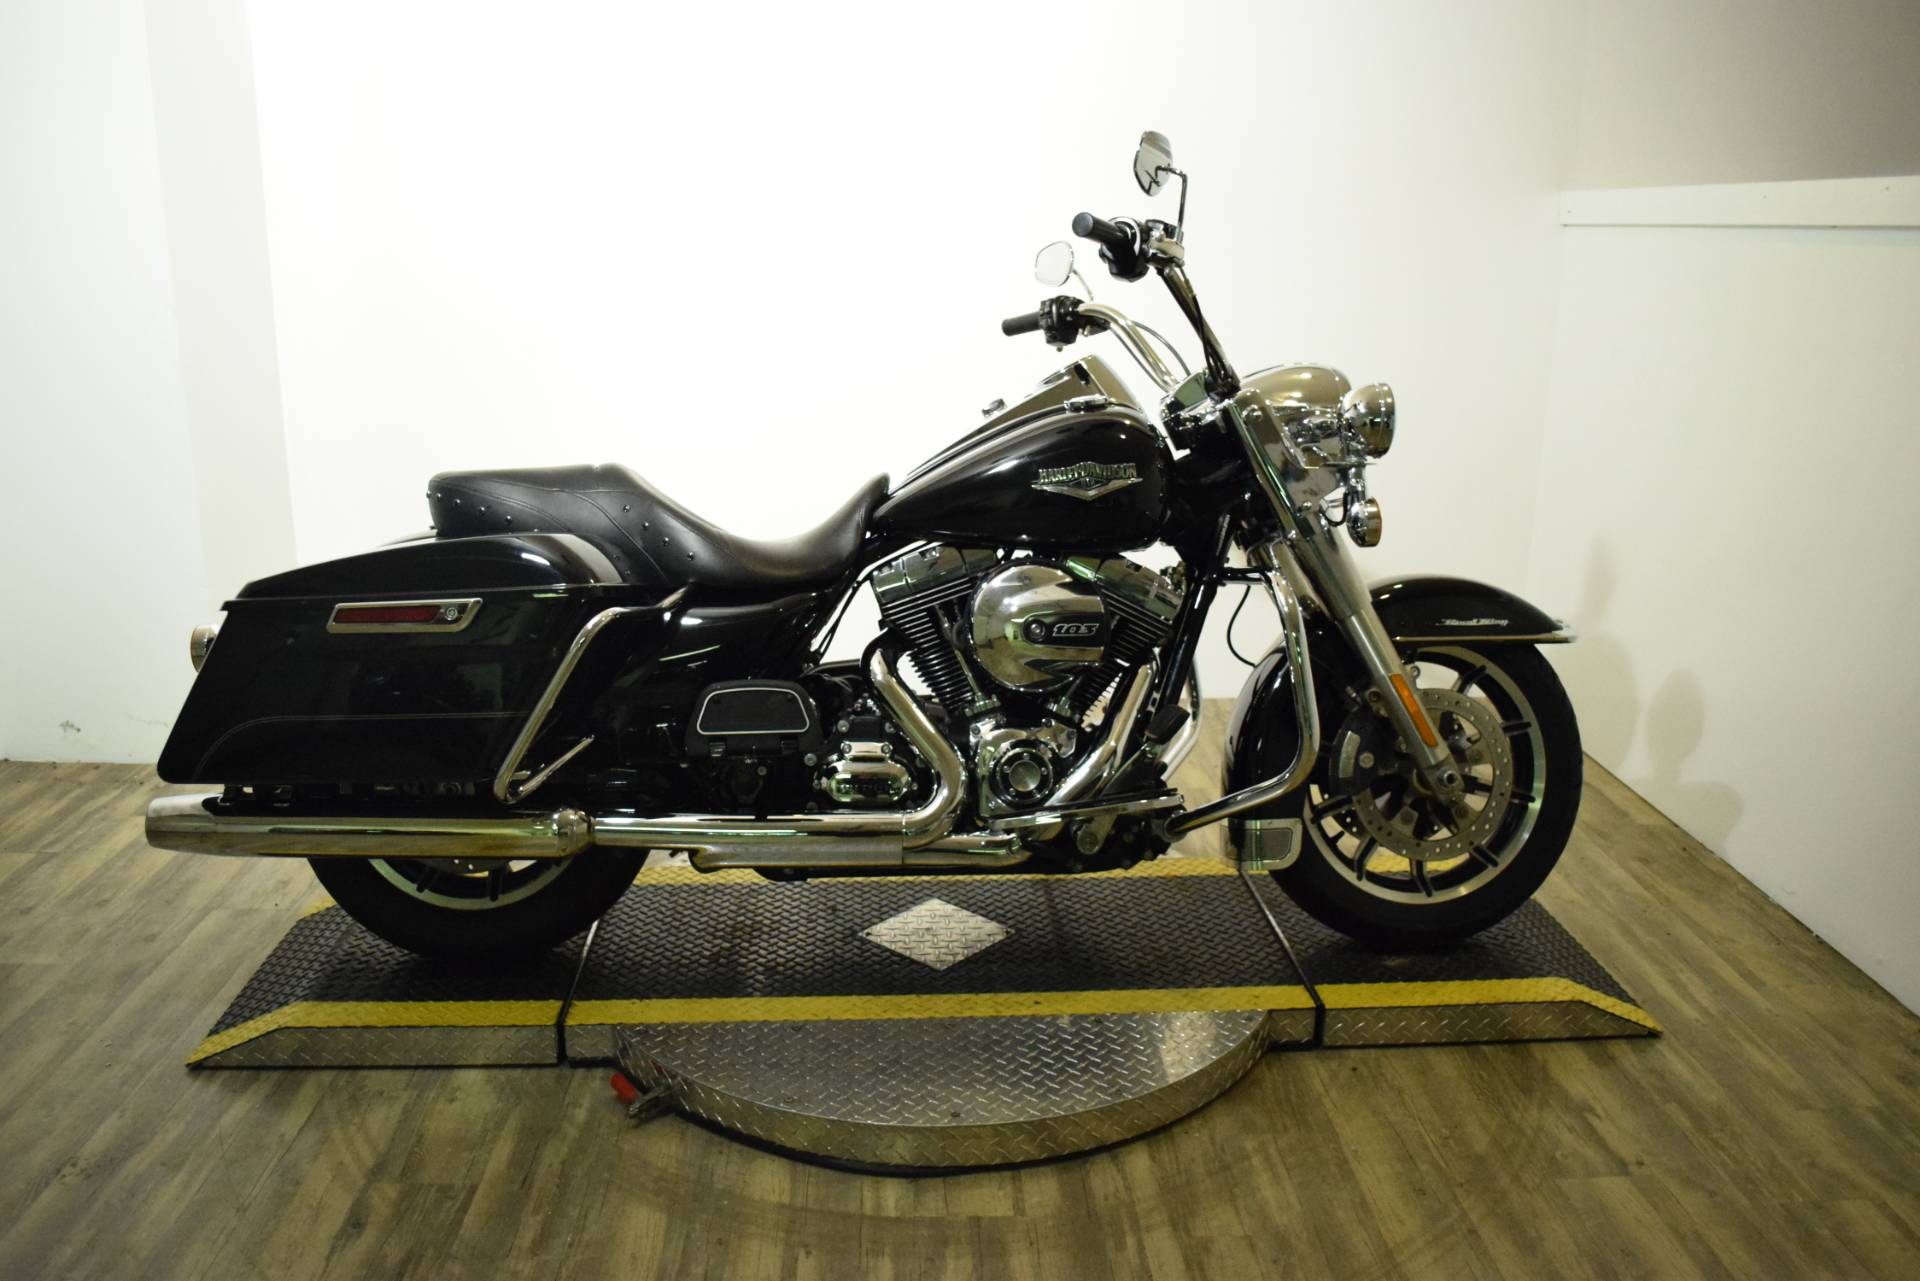 2014 harley davidson road king used motorcycle for sale wauconda 2014 harley davidson road king in wauconda illinois publicscrutiny Gallery